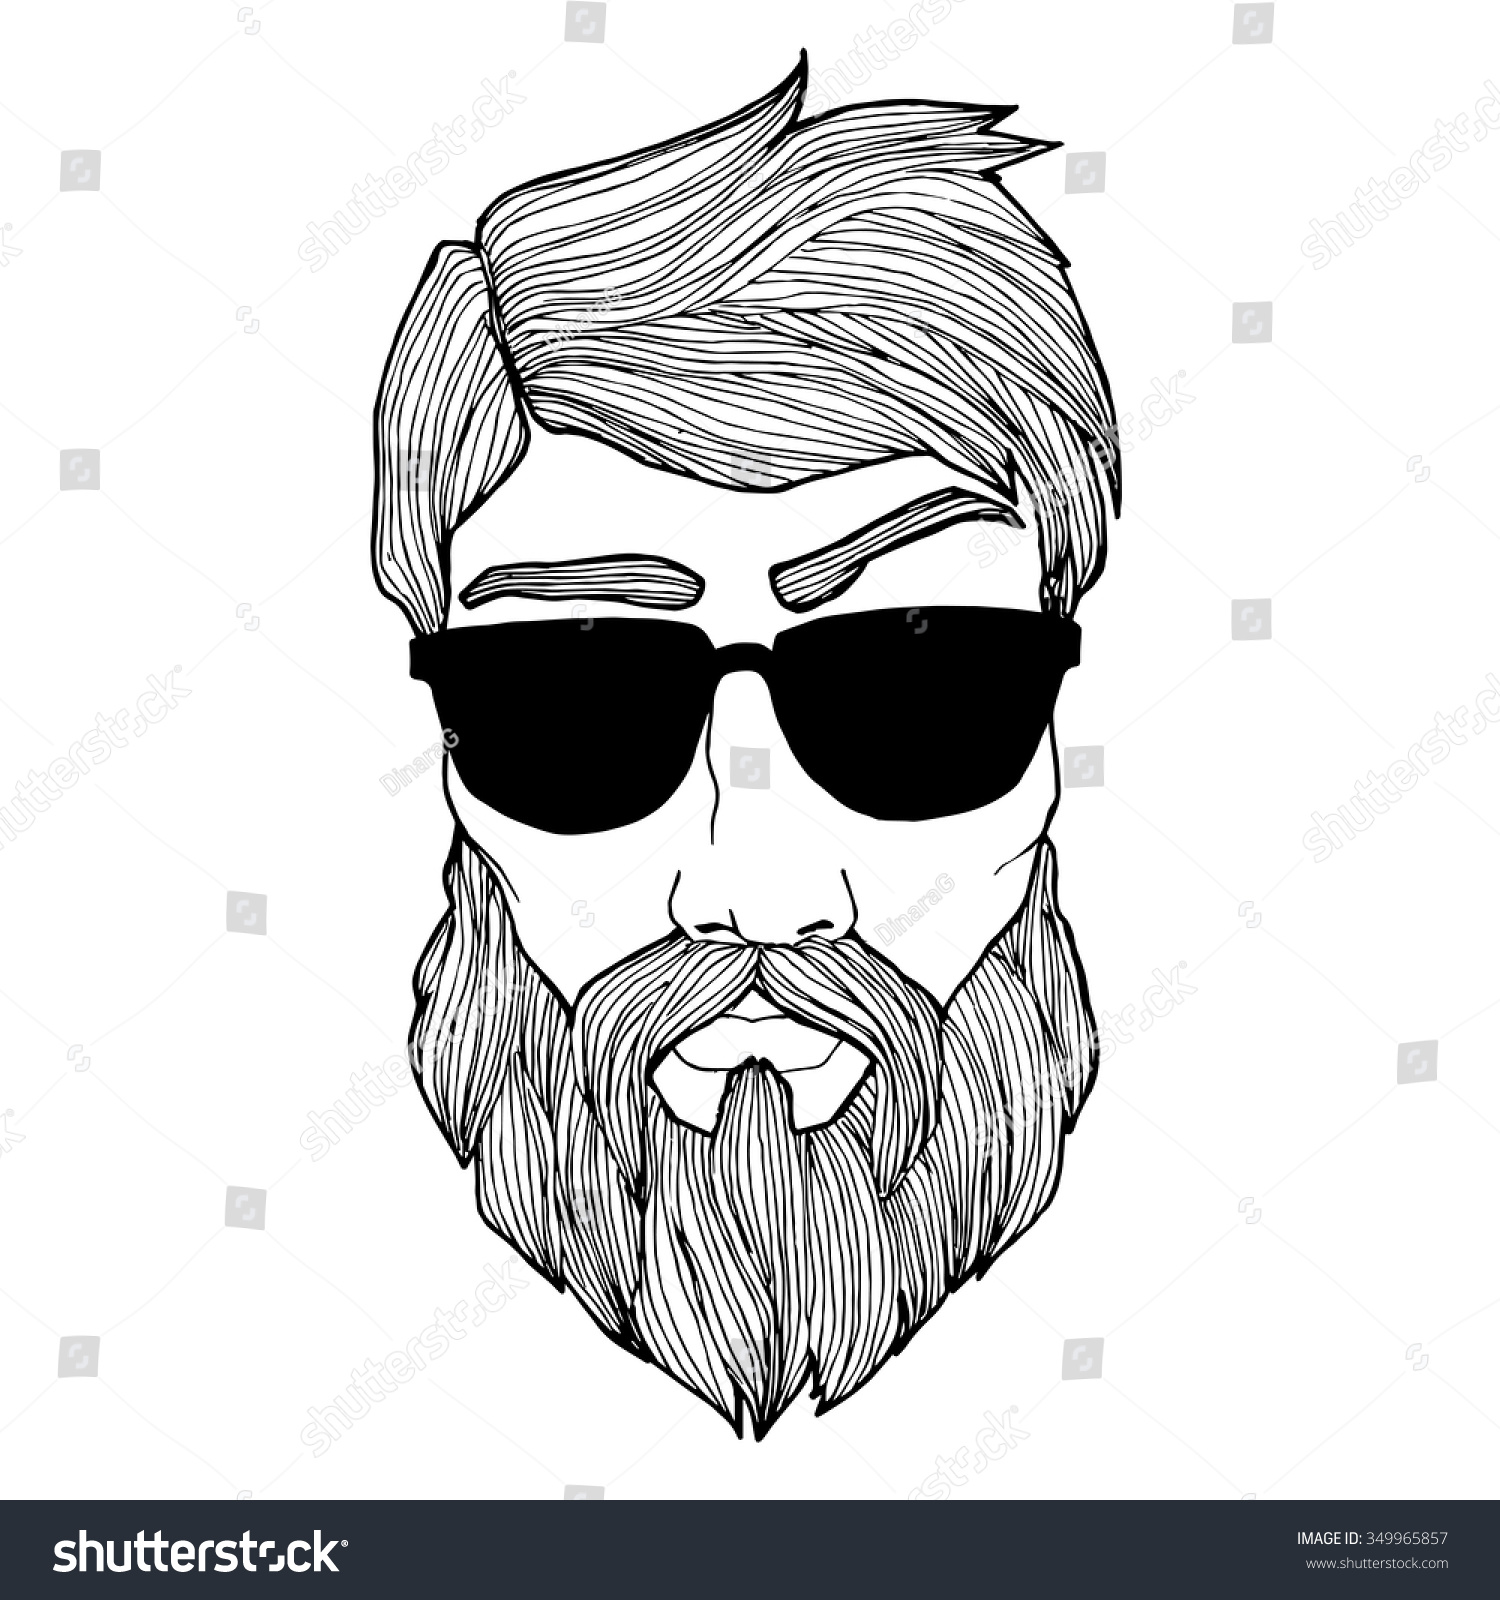 Line Drawing Styles : Vintage handdrawing pattern hipster lineart style stock